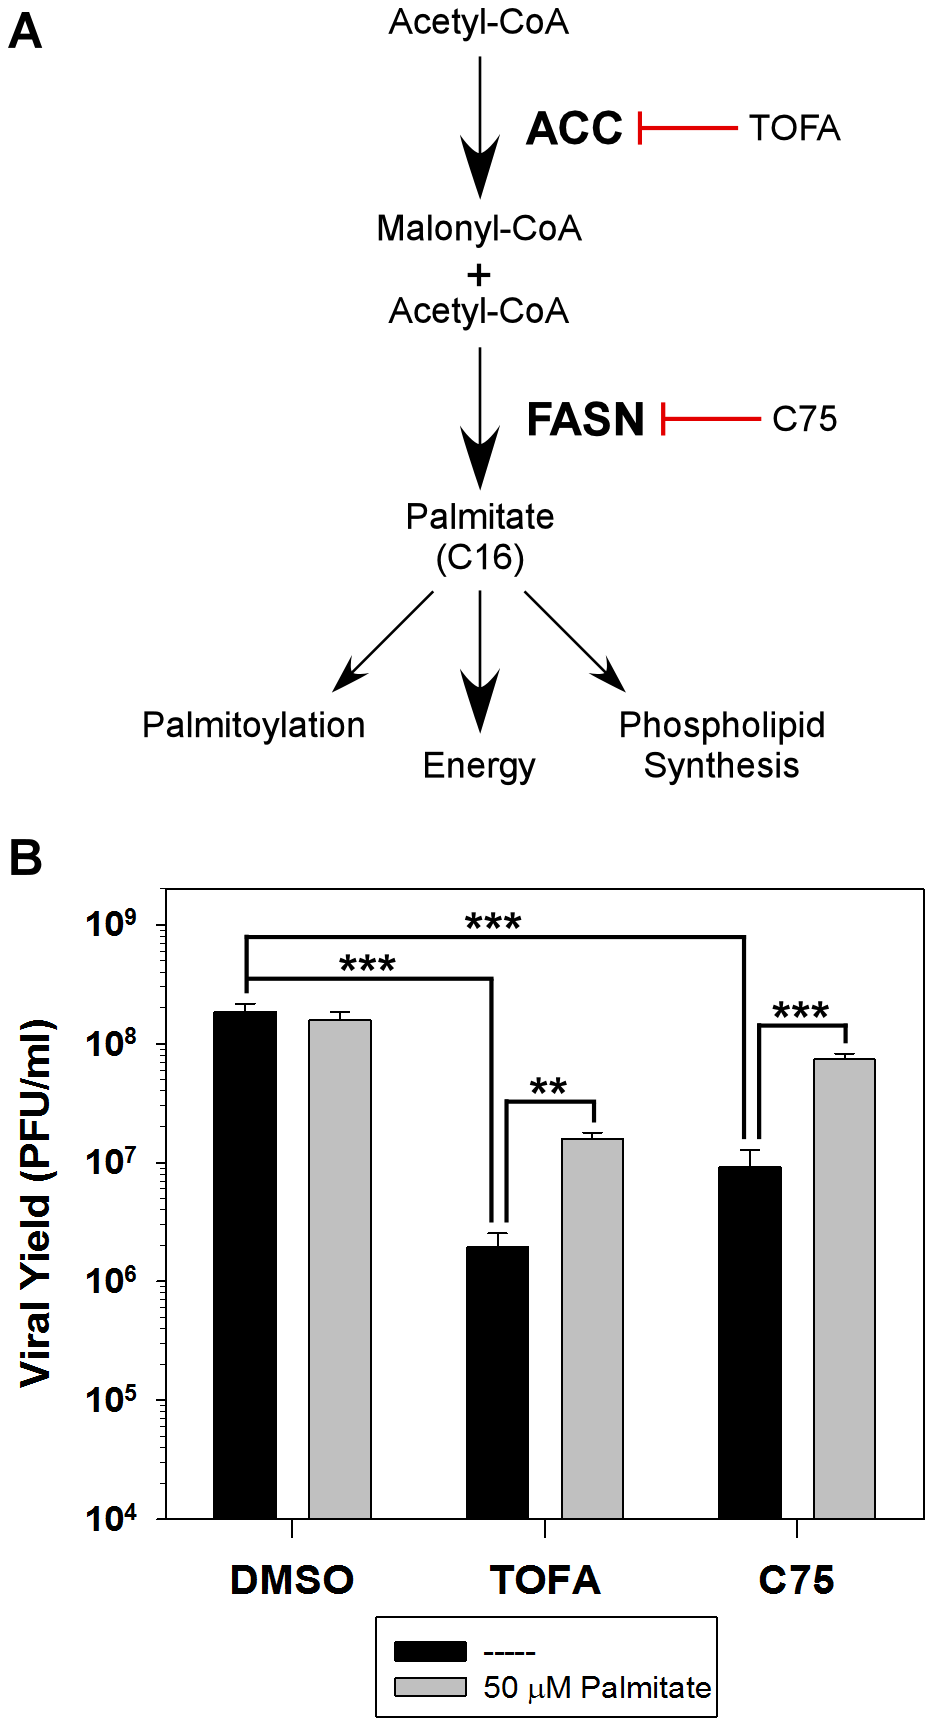 Analysis of the <i>de novo</i> fatty acid biosynthesis pathway during vaccinia infection.